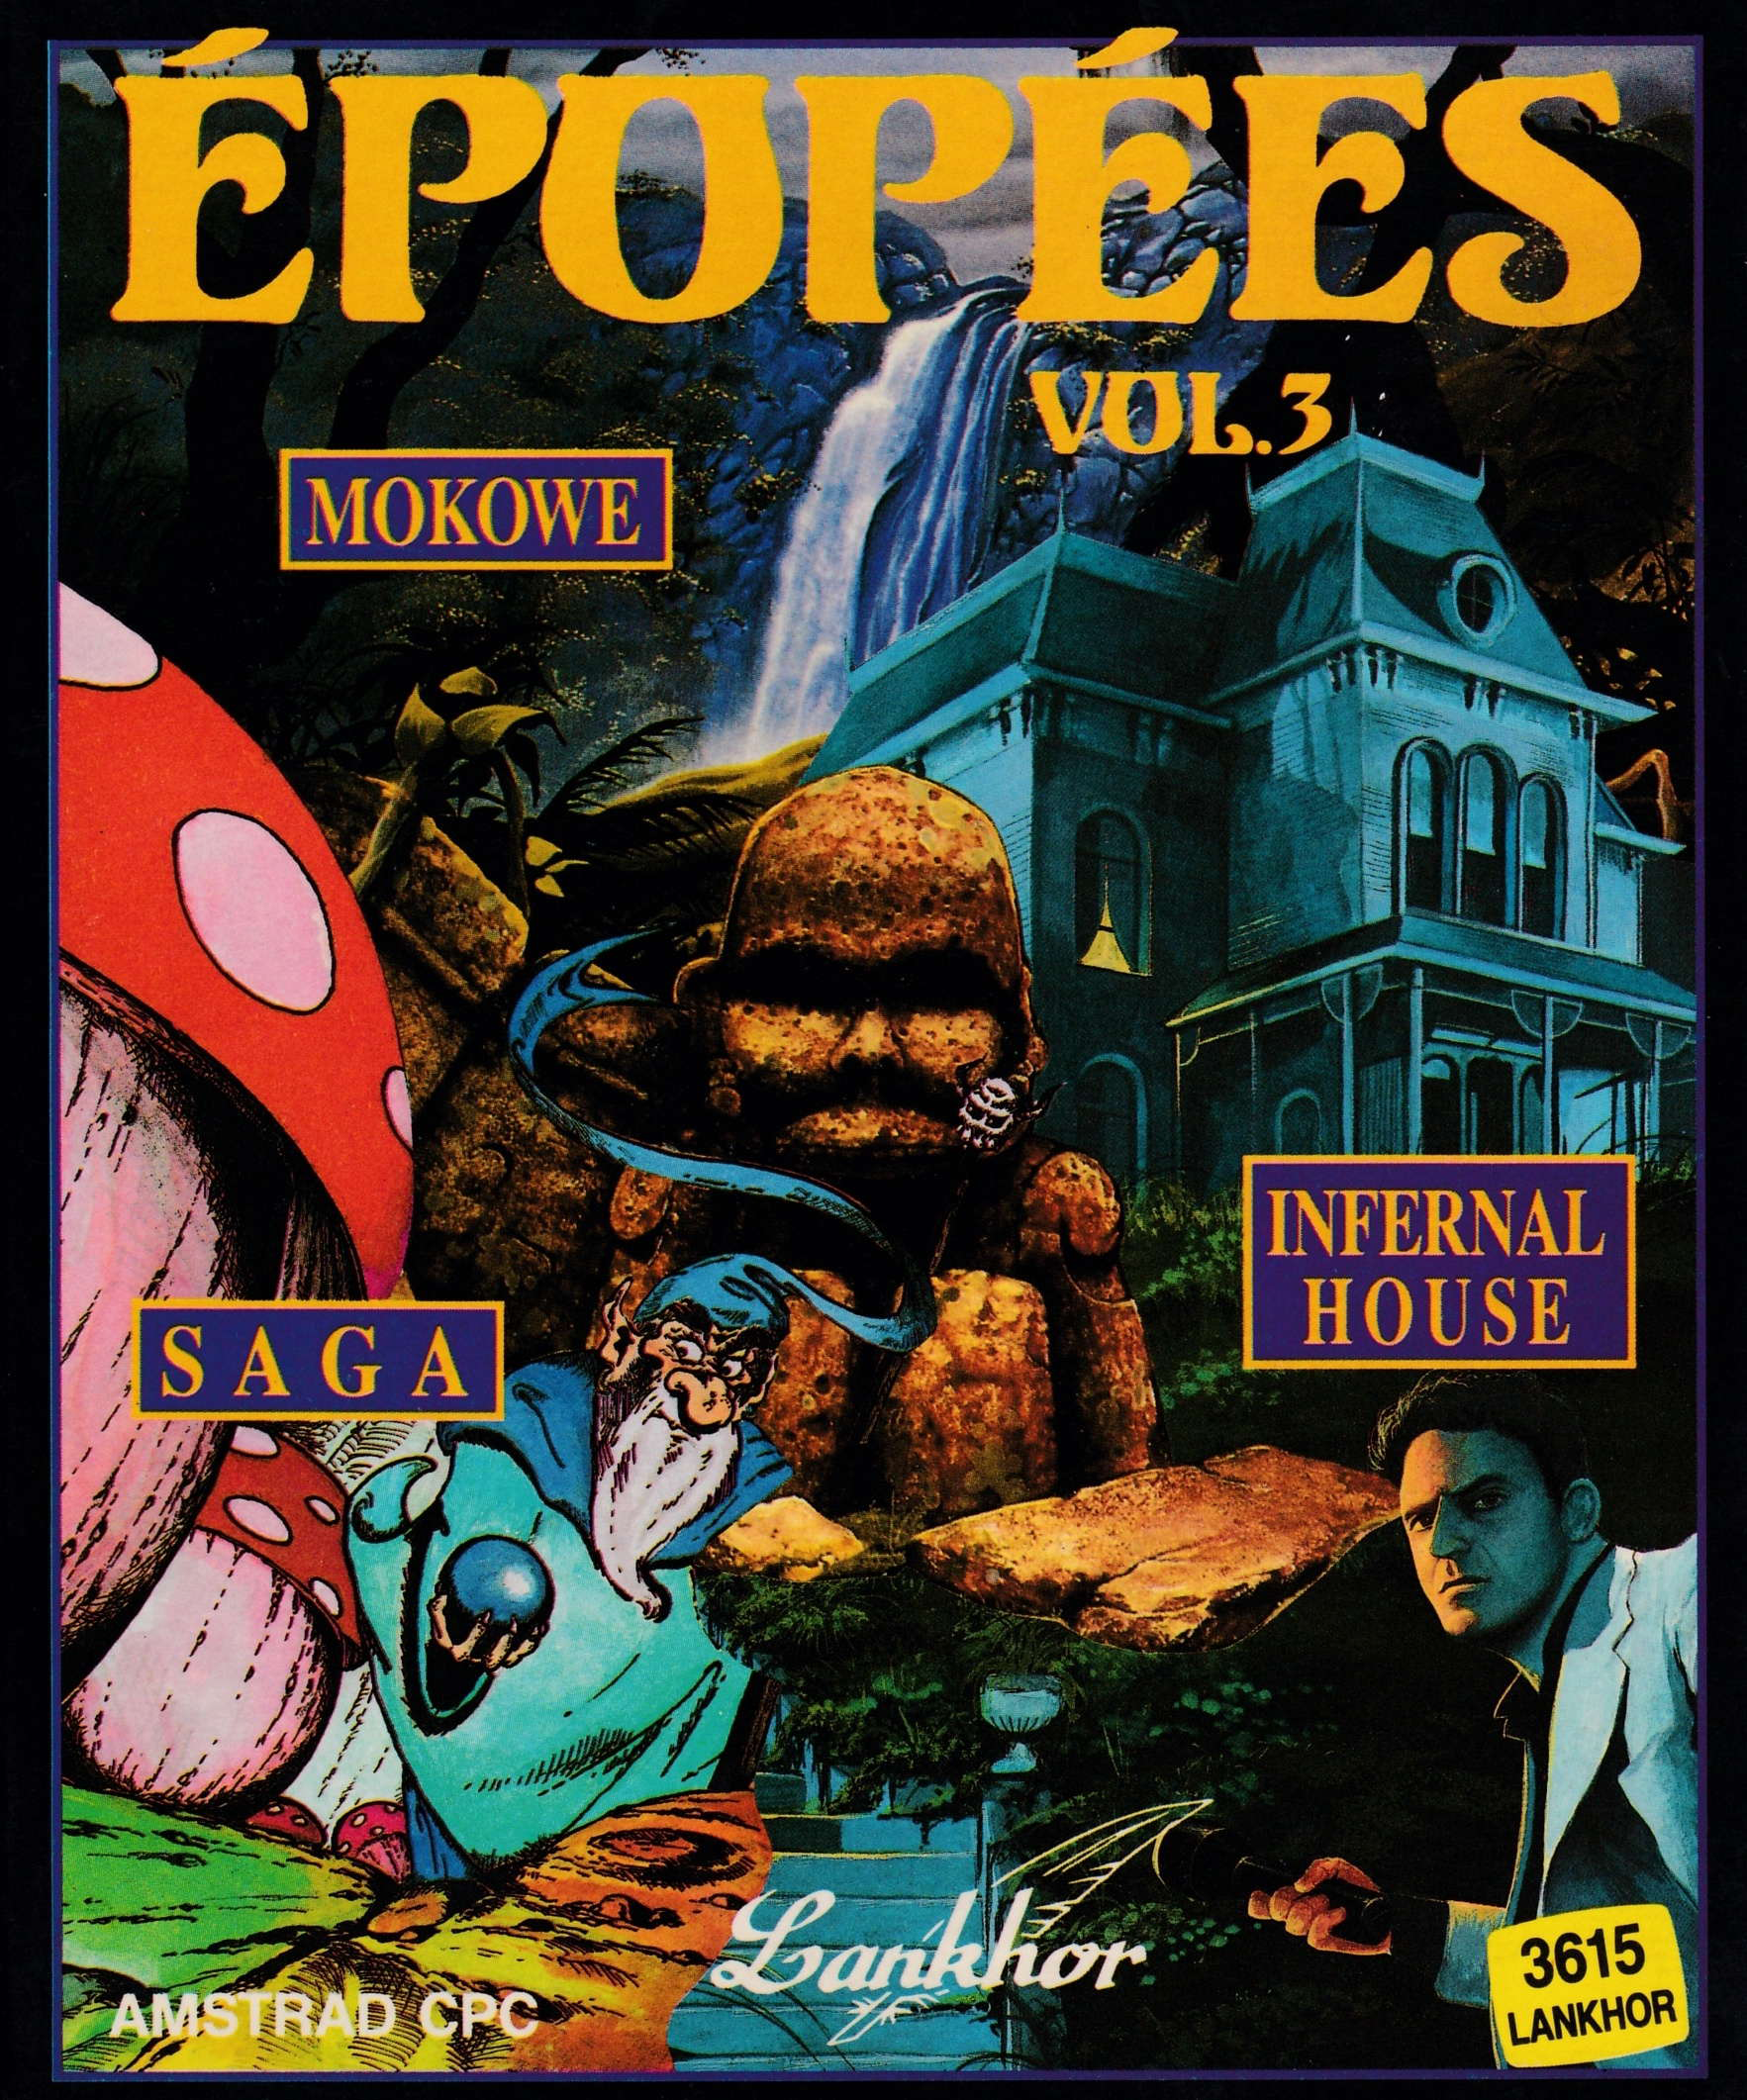 cover of the Amstrad CPC game Epopees Vol. 3  by GameBase CPC